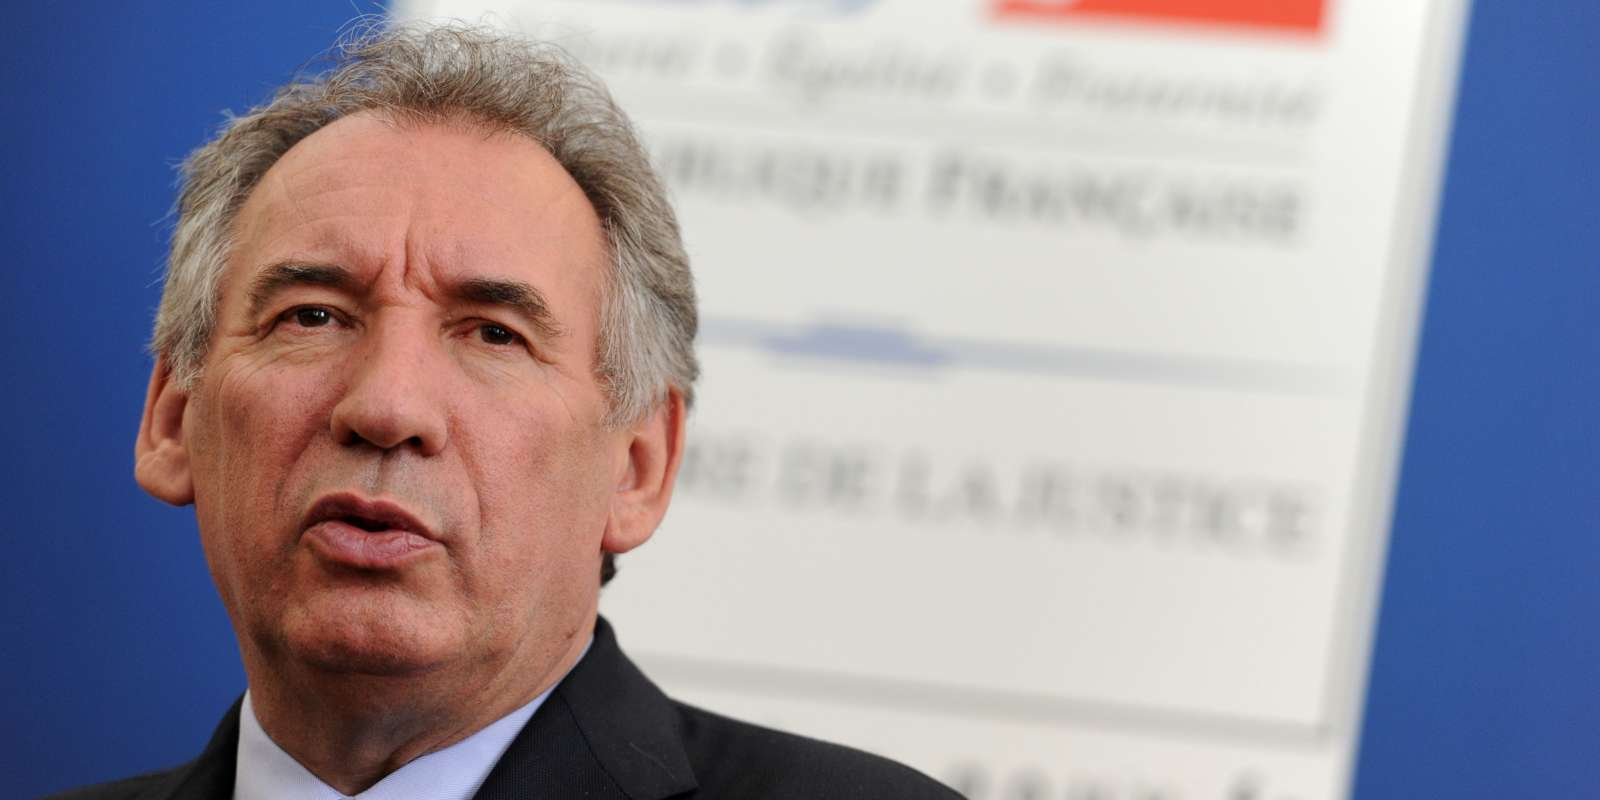 French Justice minister Francois Bayrou speaks during a press conference during a visit at Pau court house, southwestern France, on May 19, 2017. / AFP / IROZ GAIZKA